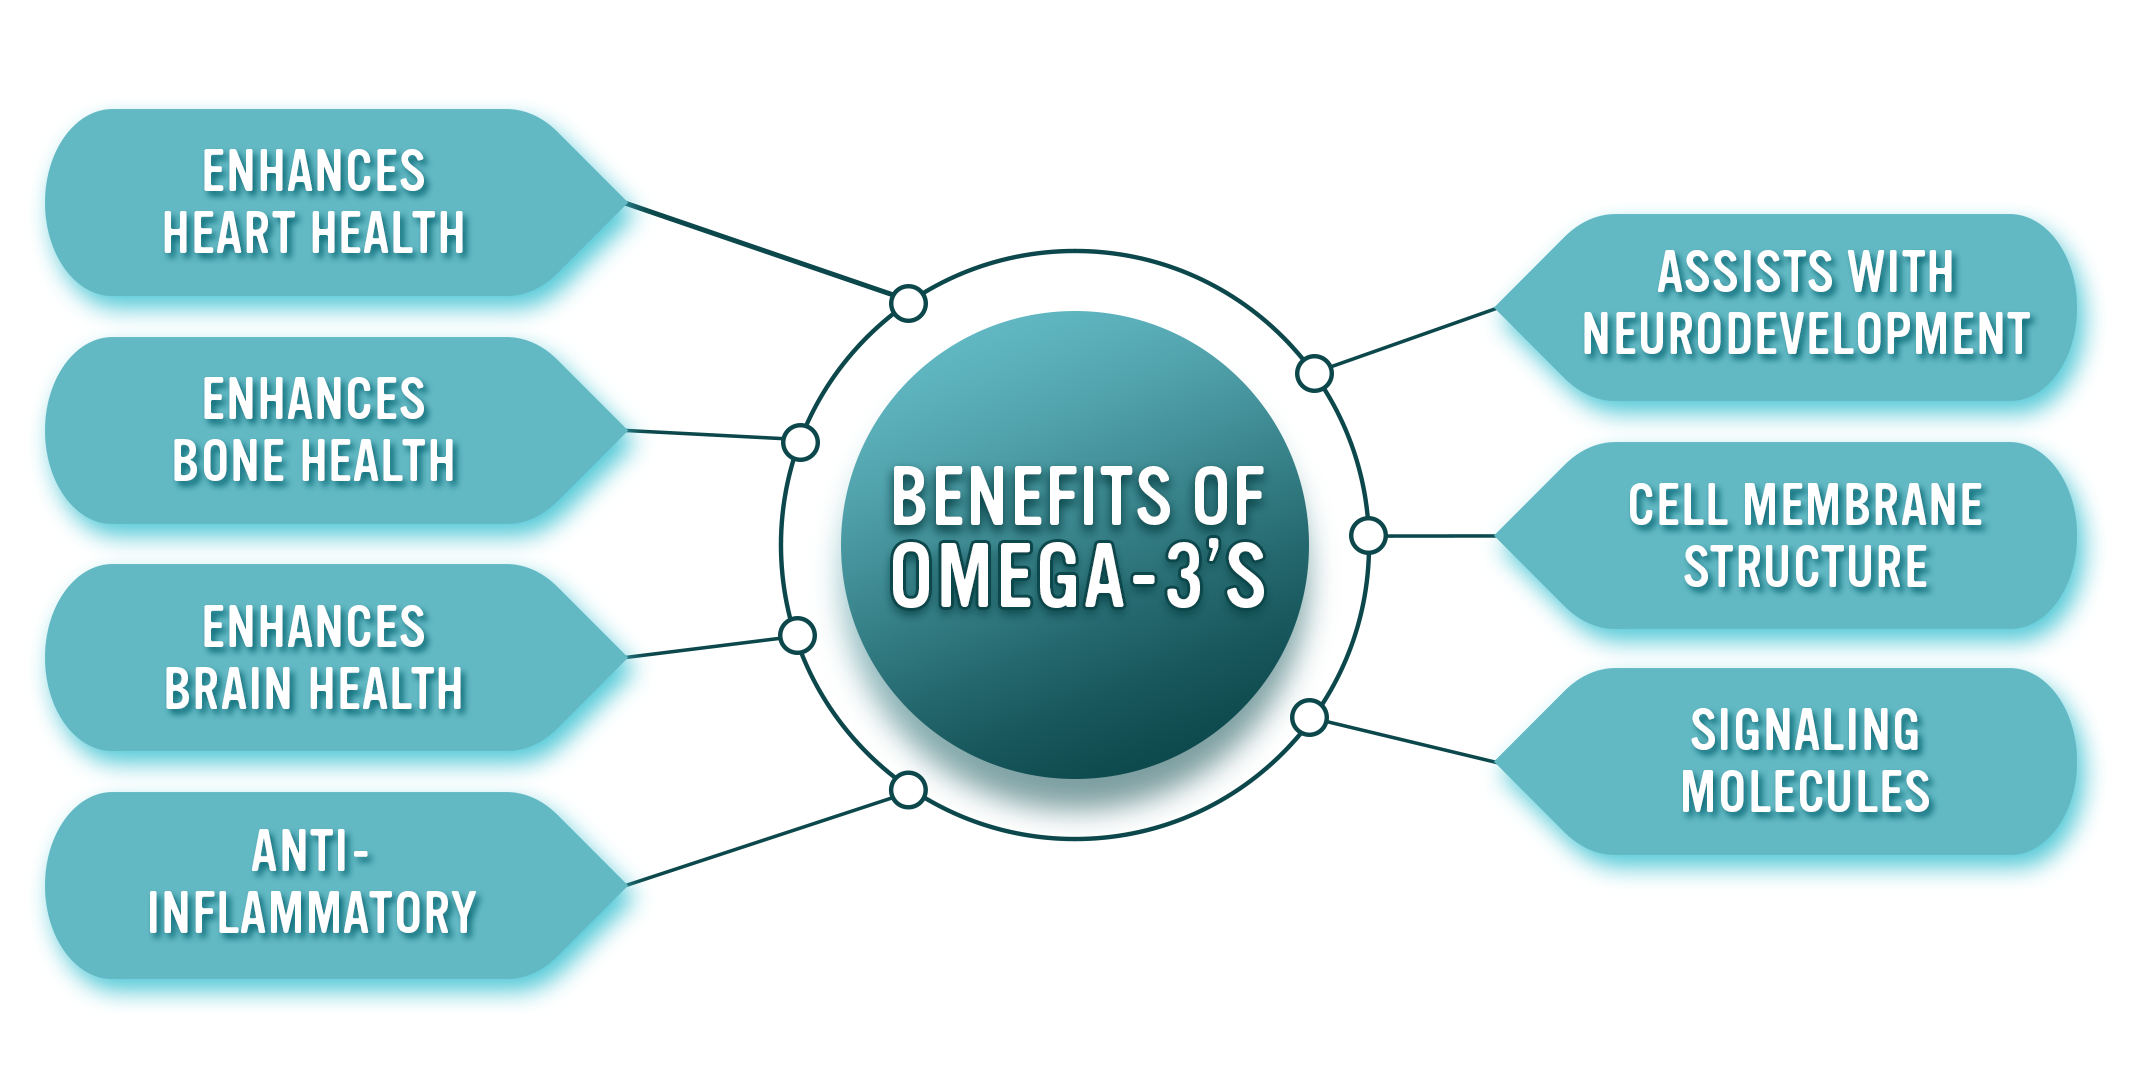 Benefits of Omega-3's